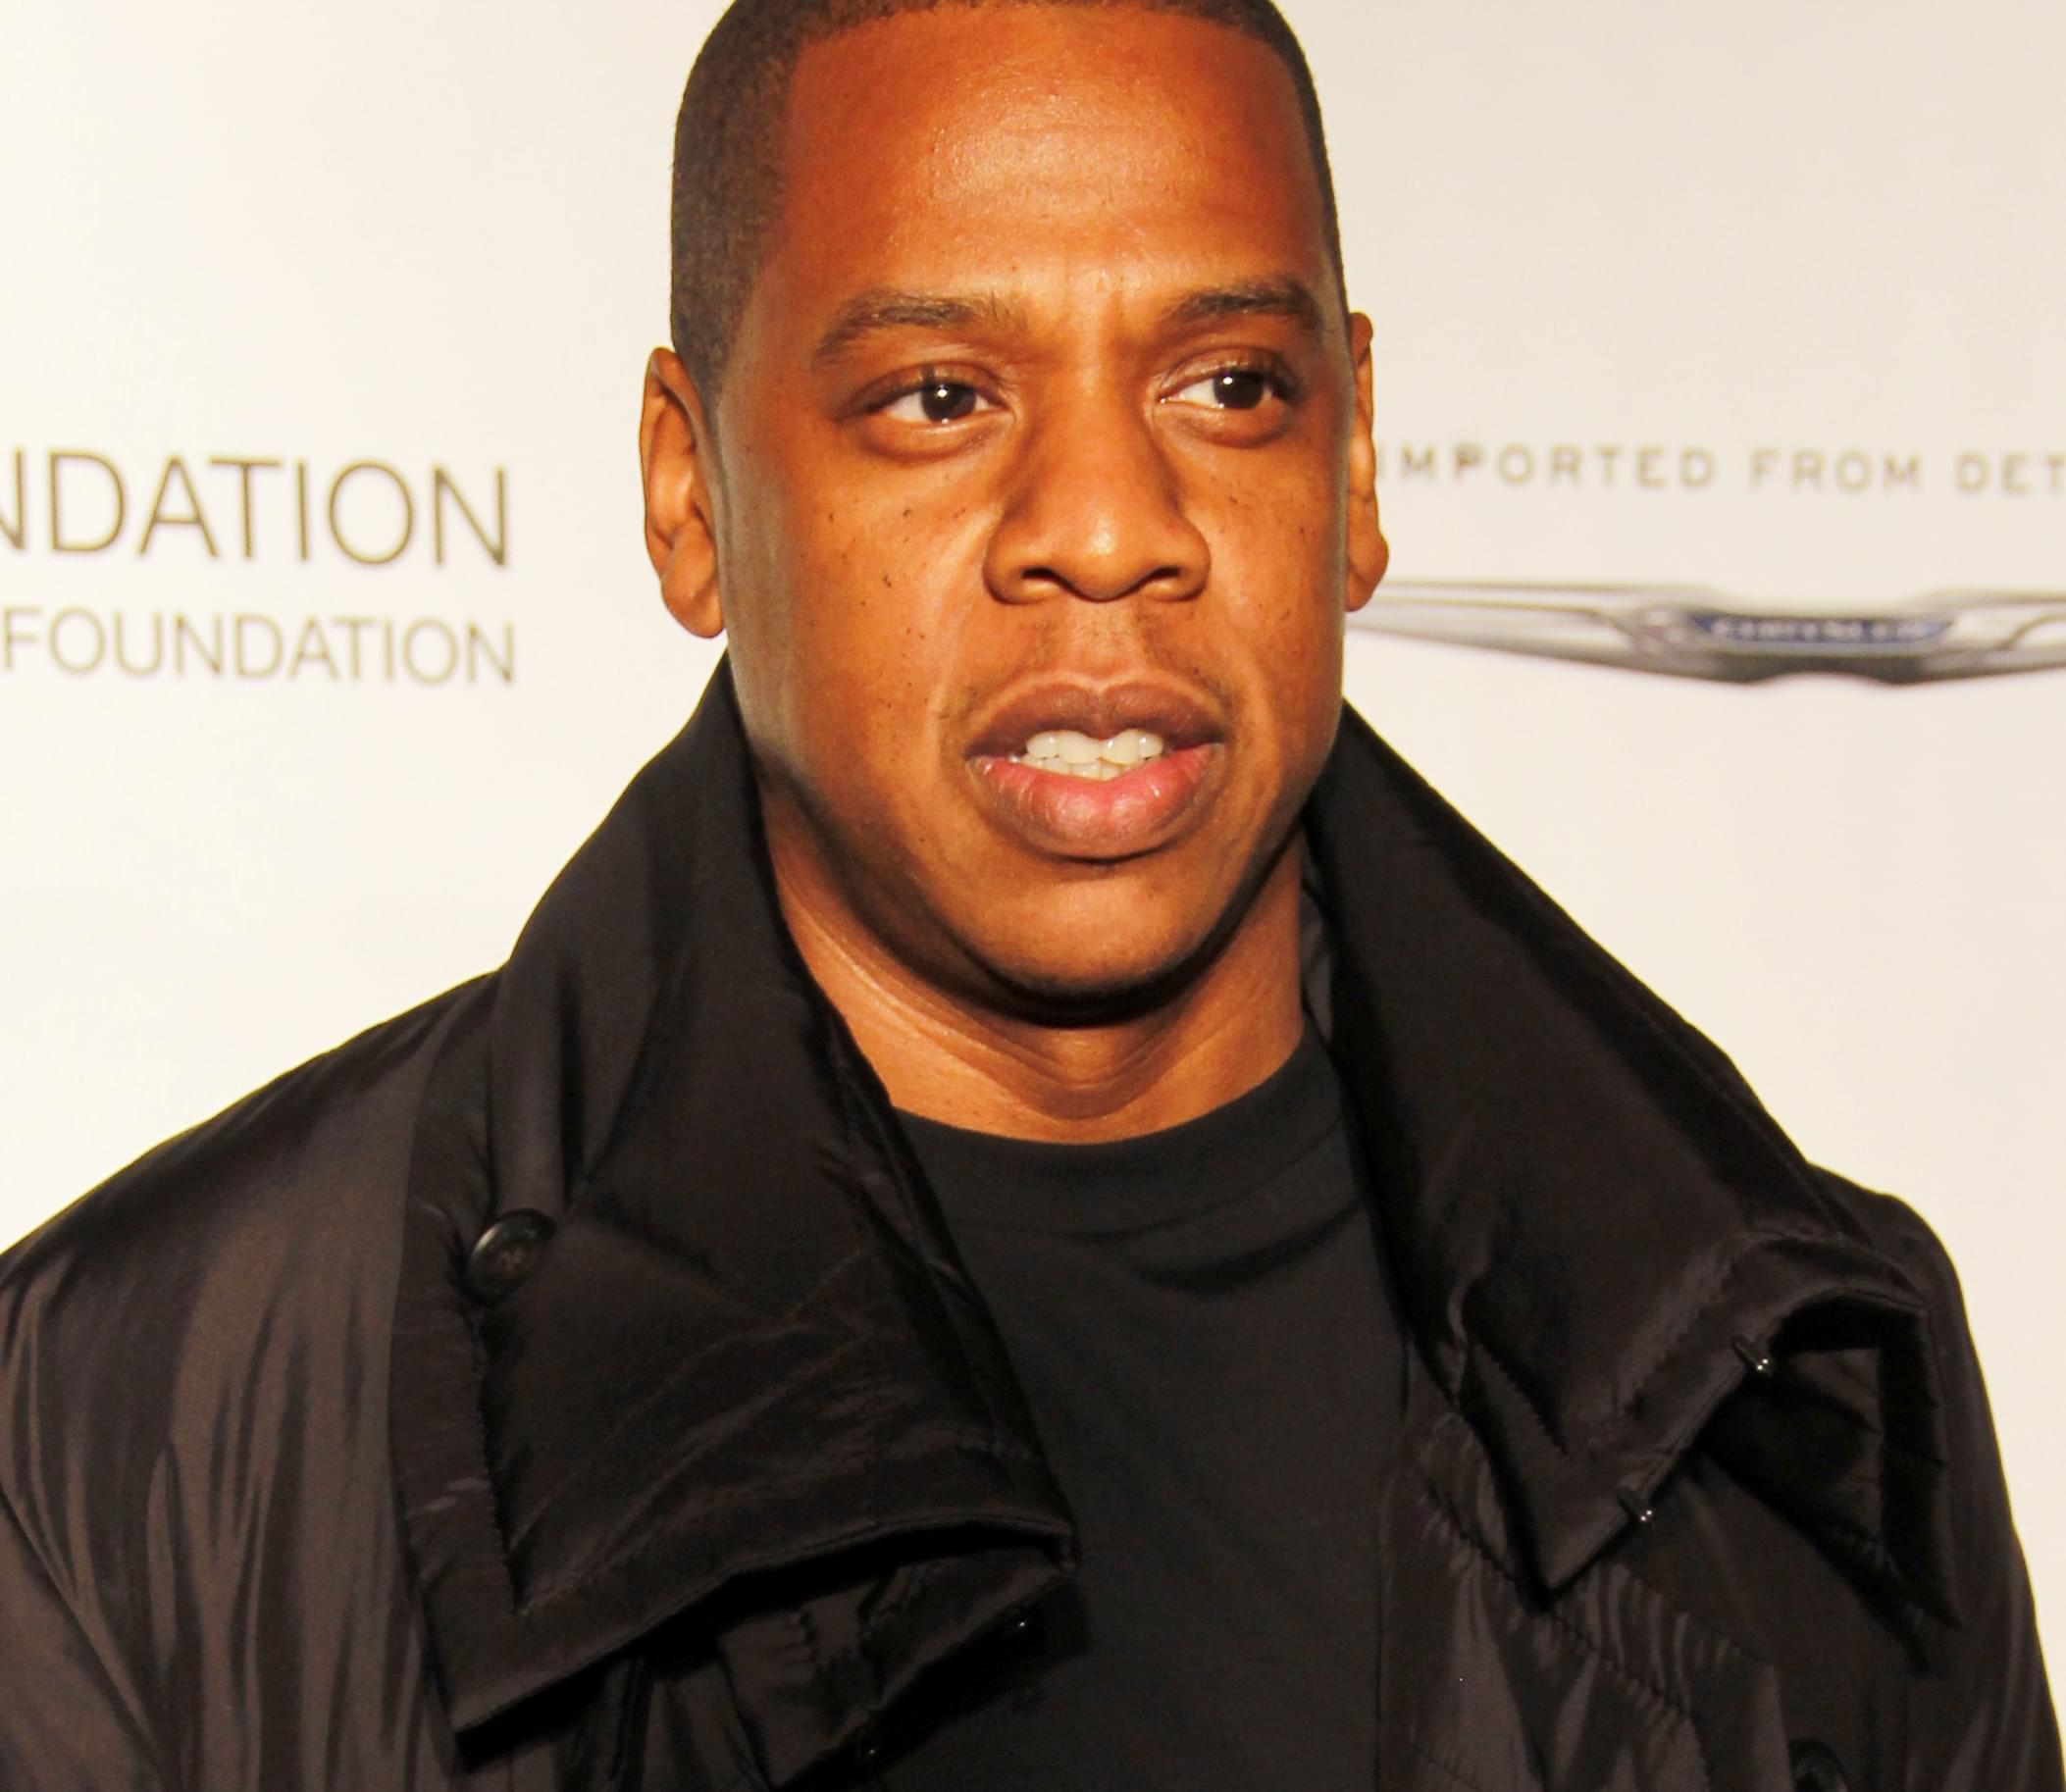 The NFL is partnering with Jay-Z on music and social injustice campiagn